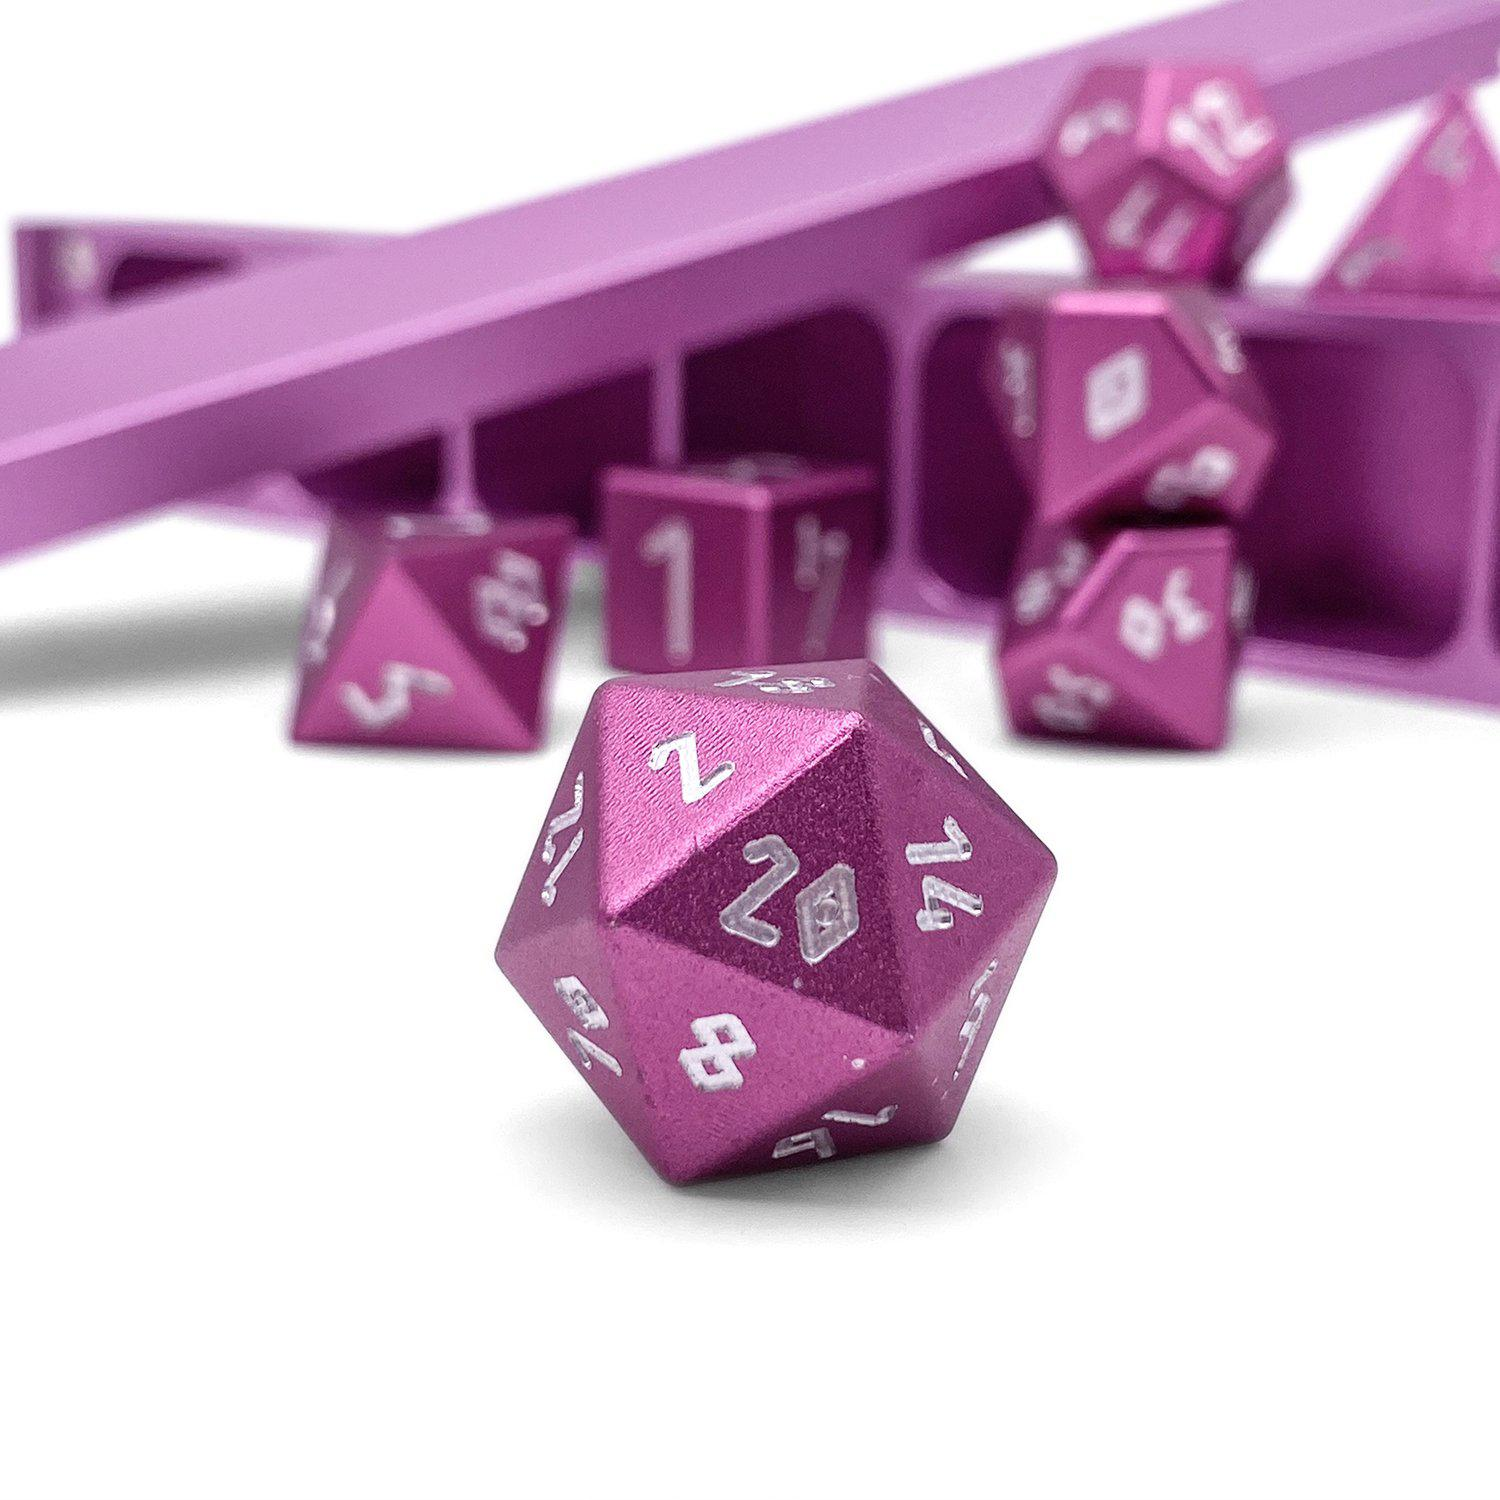 Precision CNC Aluminum Dice Set with Dice Vault – Warlock Pink